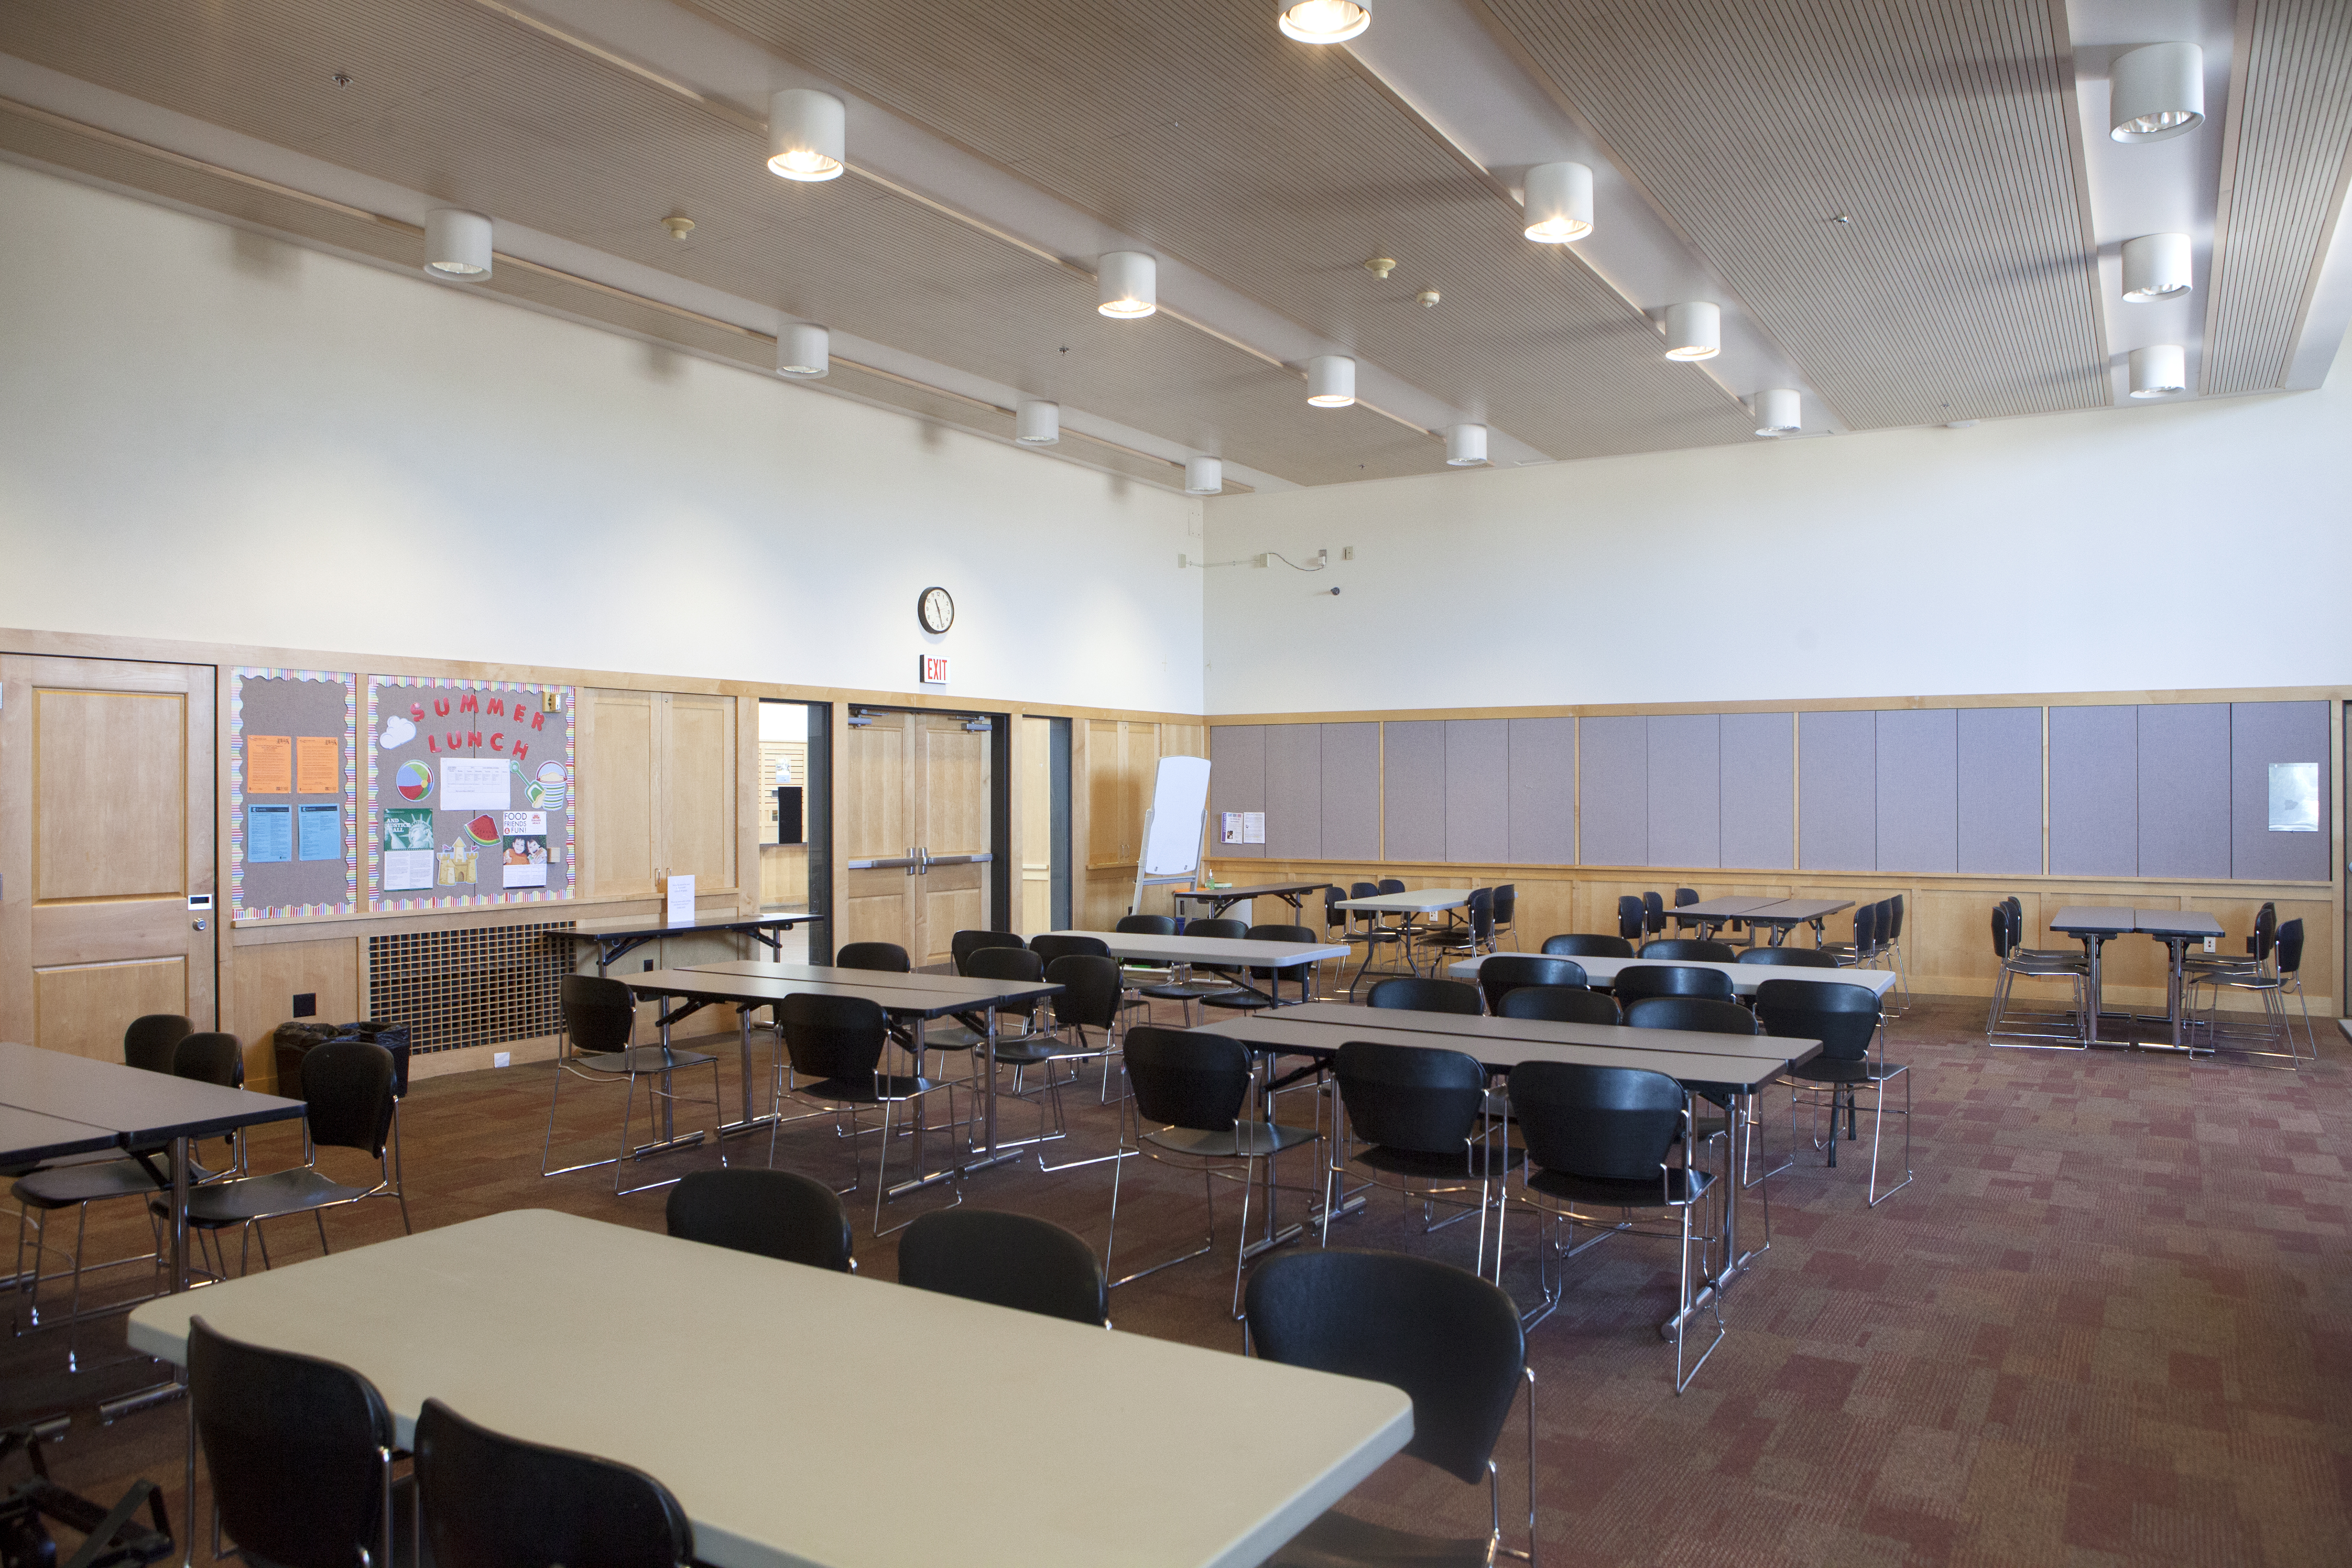 Midland Meeting Room Large Multnomah County Library